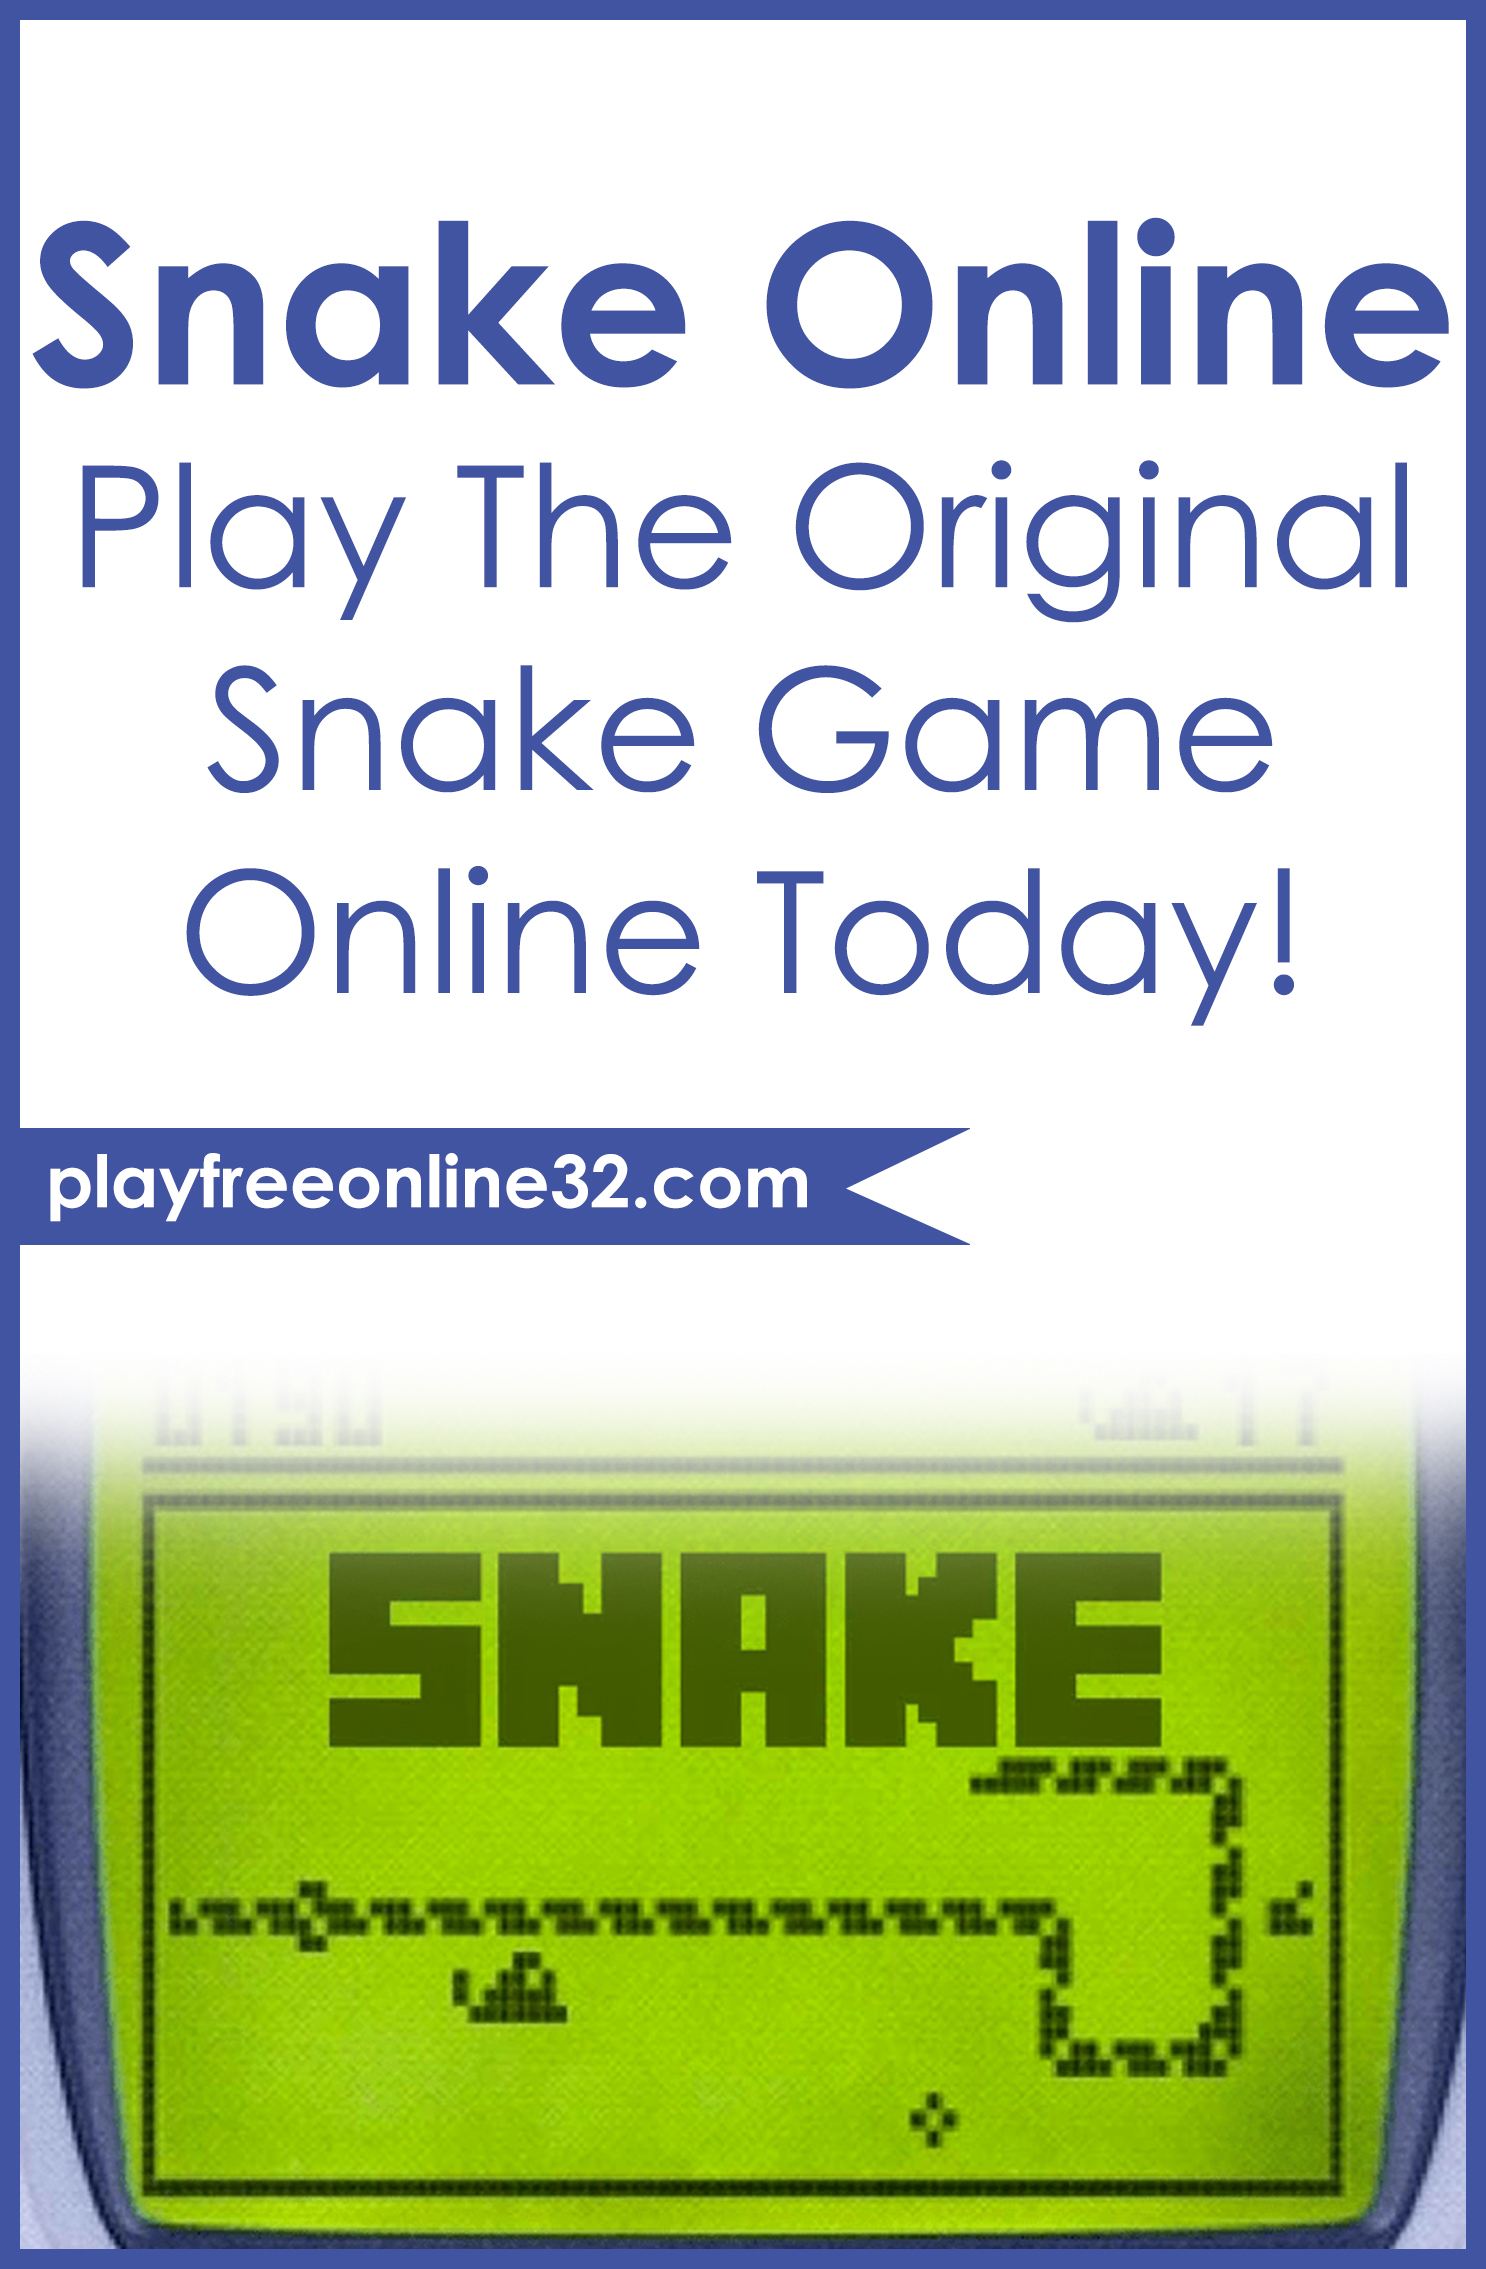 Snake Online • Play The Original Snake Game Online Today!